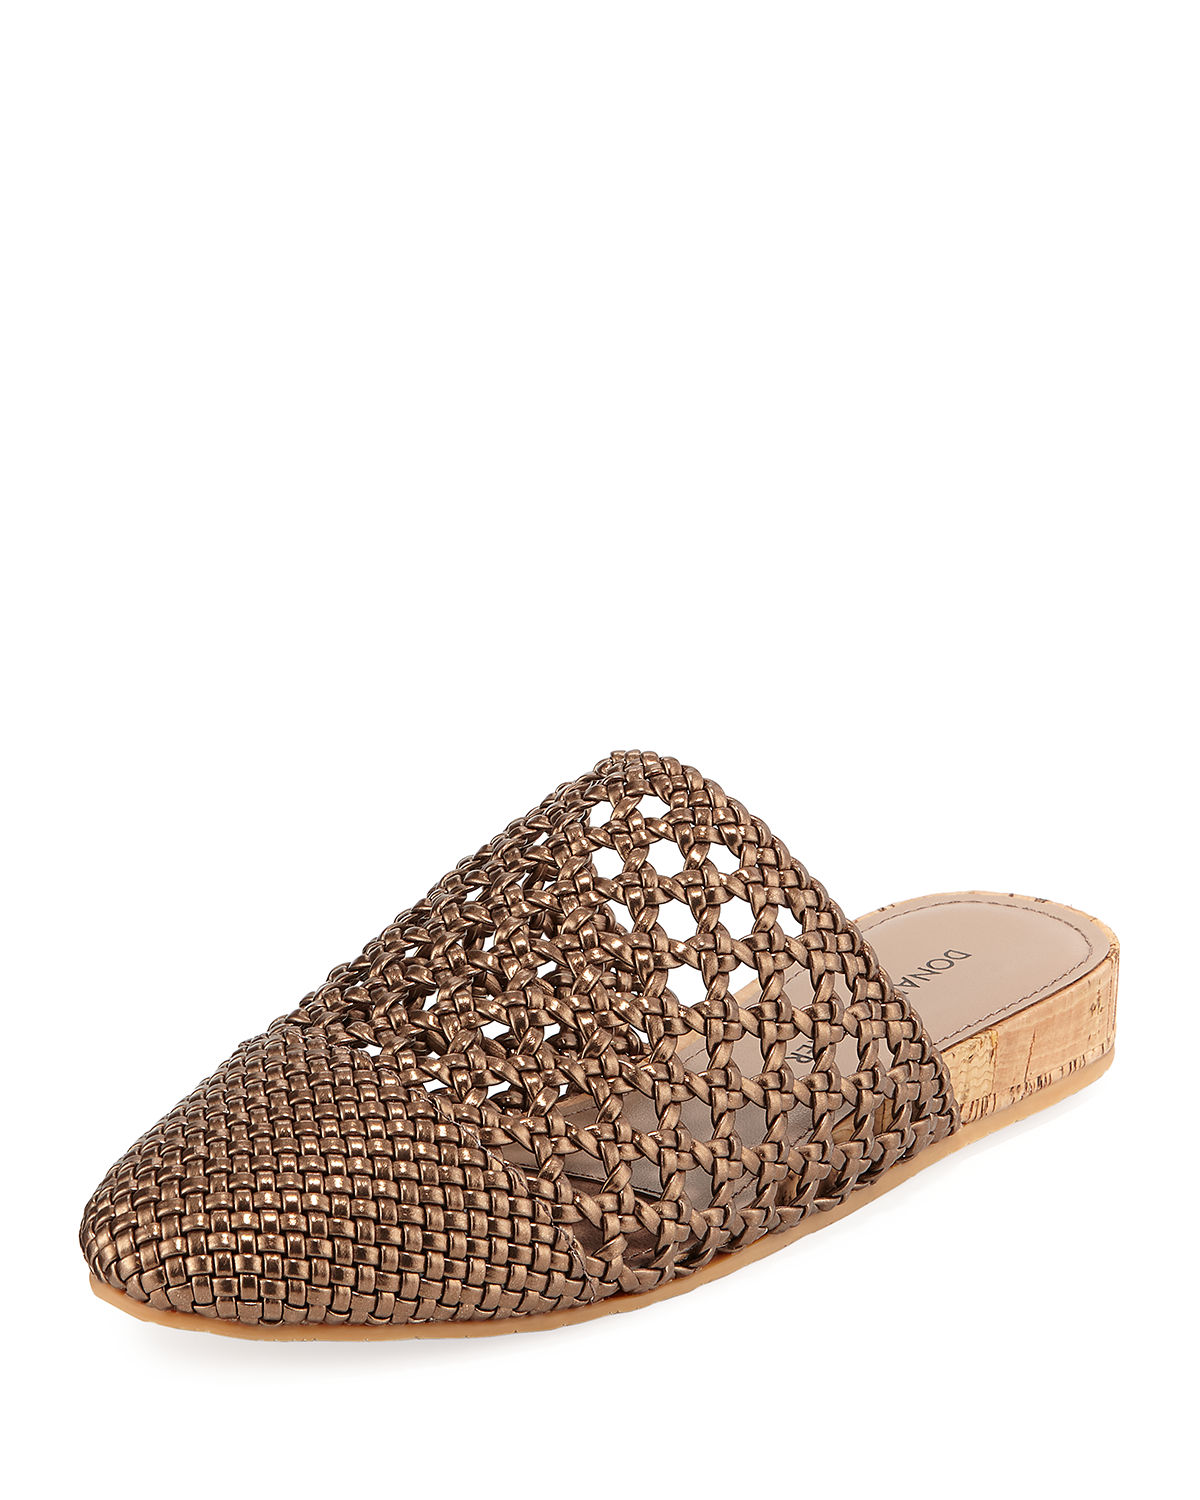 Donald Pliner Rothkosp Woven Mule buy cheap store for nice for sale discount ebay pYgiNWBajh